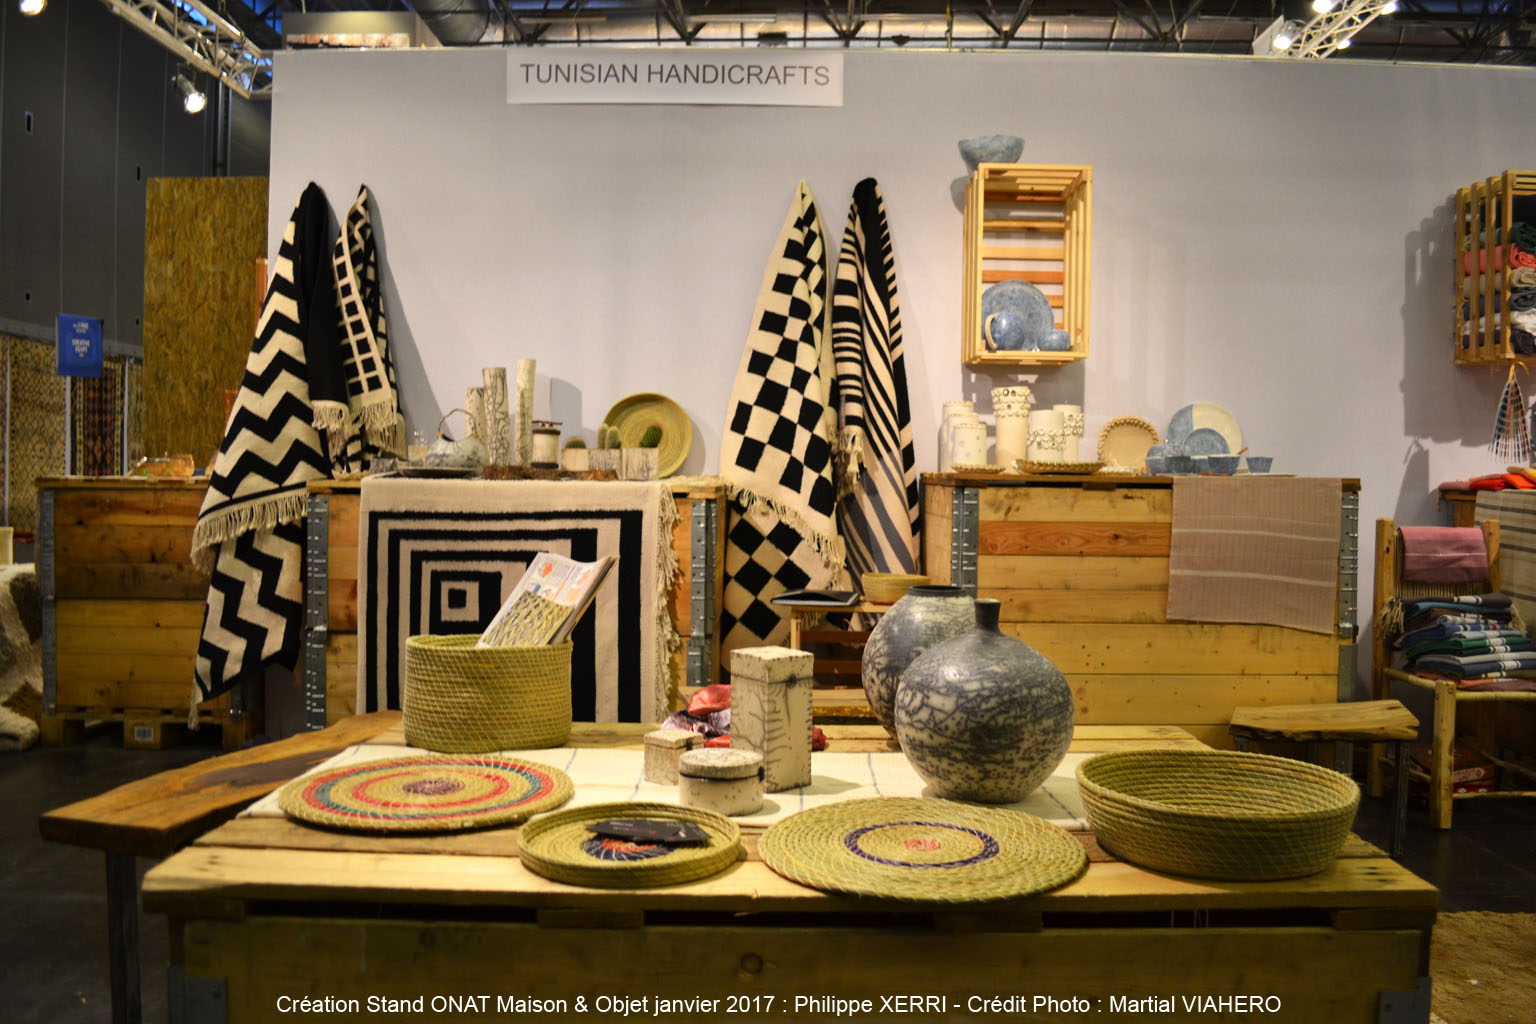 Salon Maison Et Objet In Photos Tunisia At The Salon Maison Et Objets In Paris 1001 Tunisie